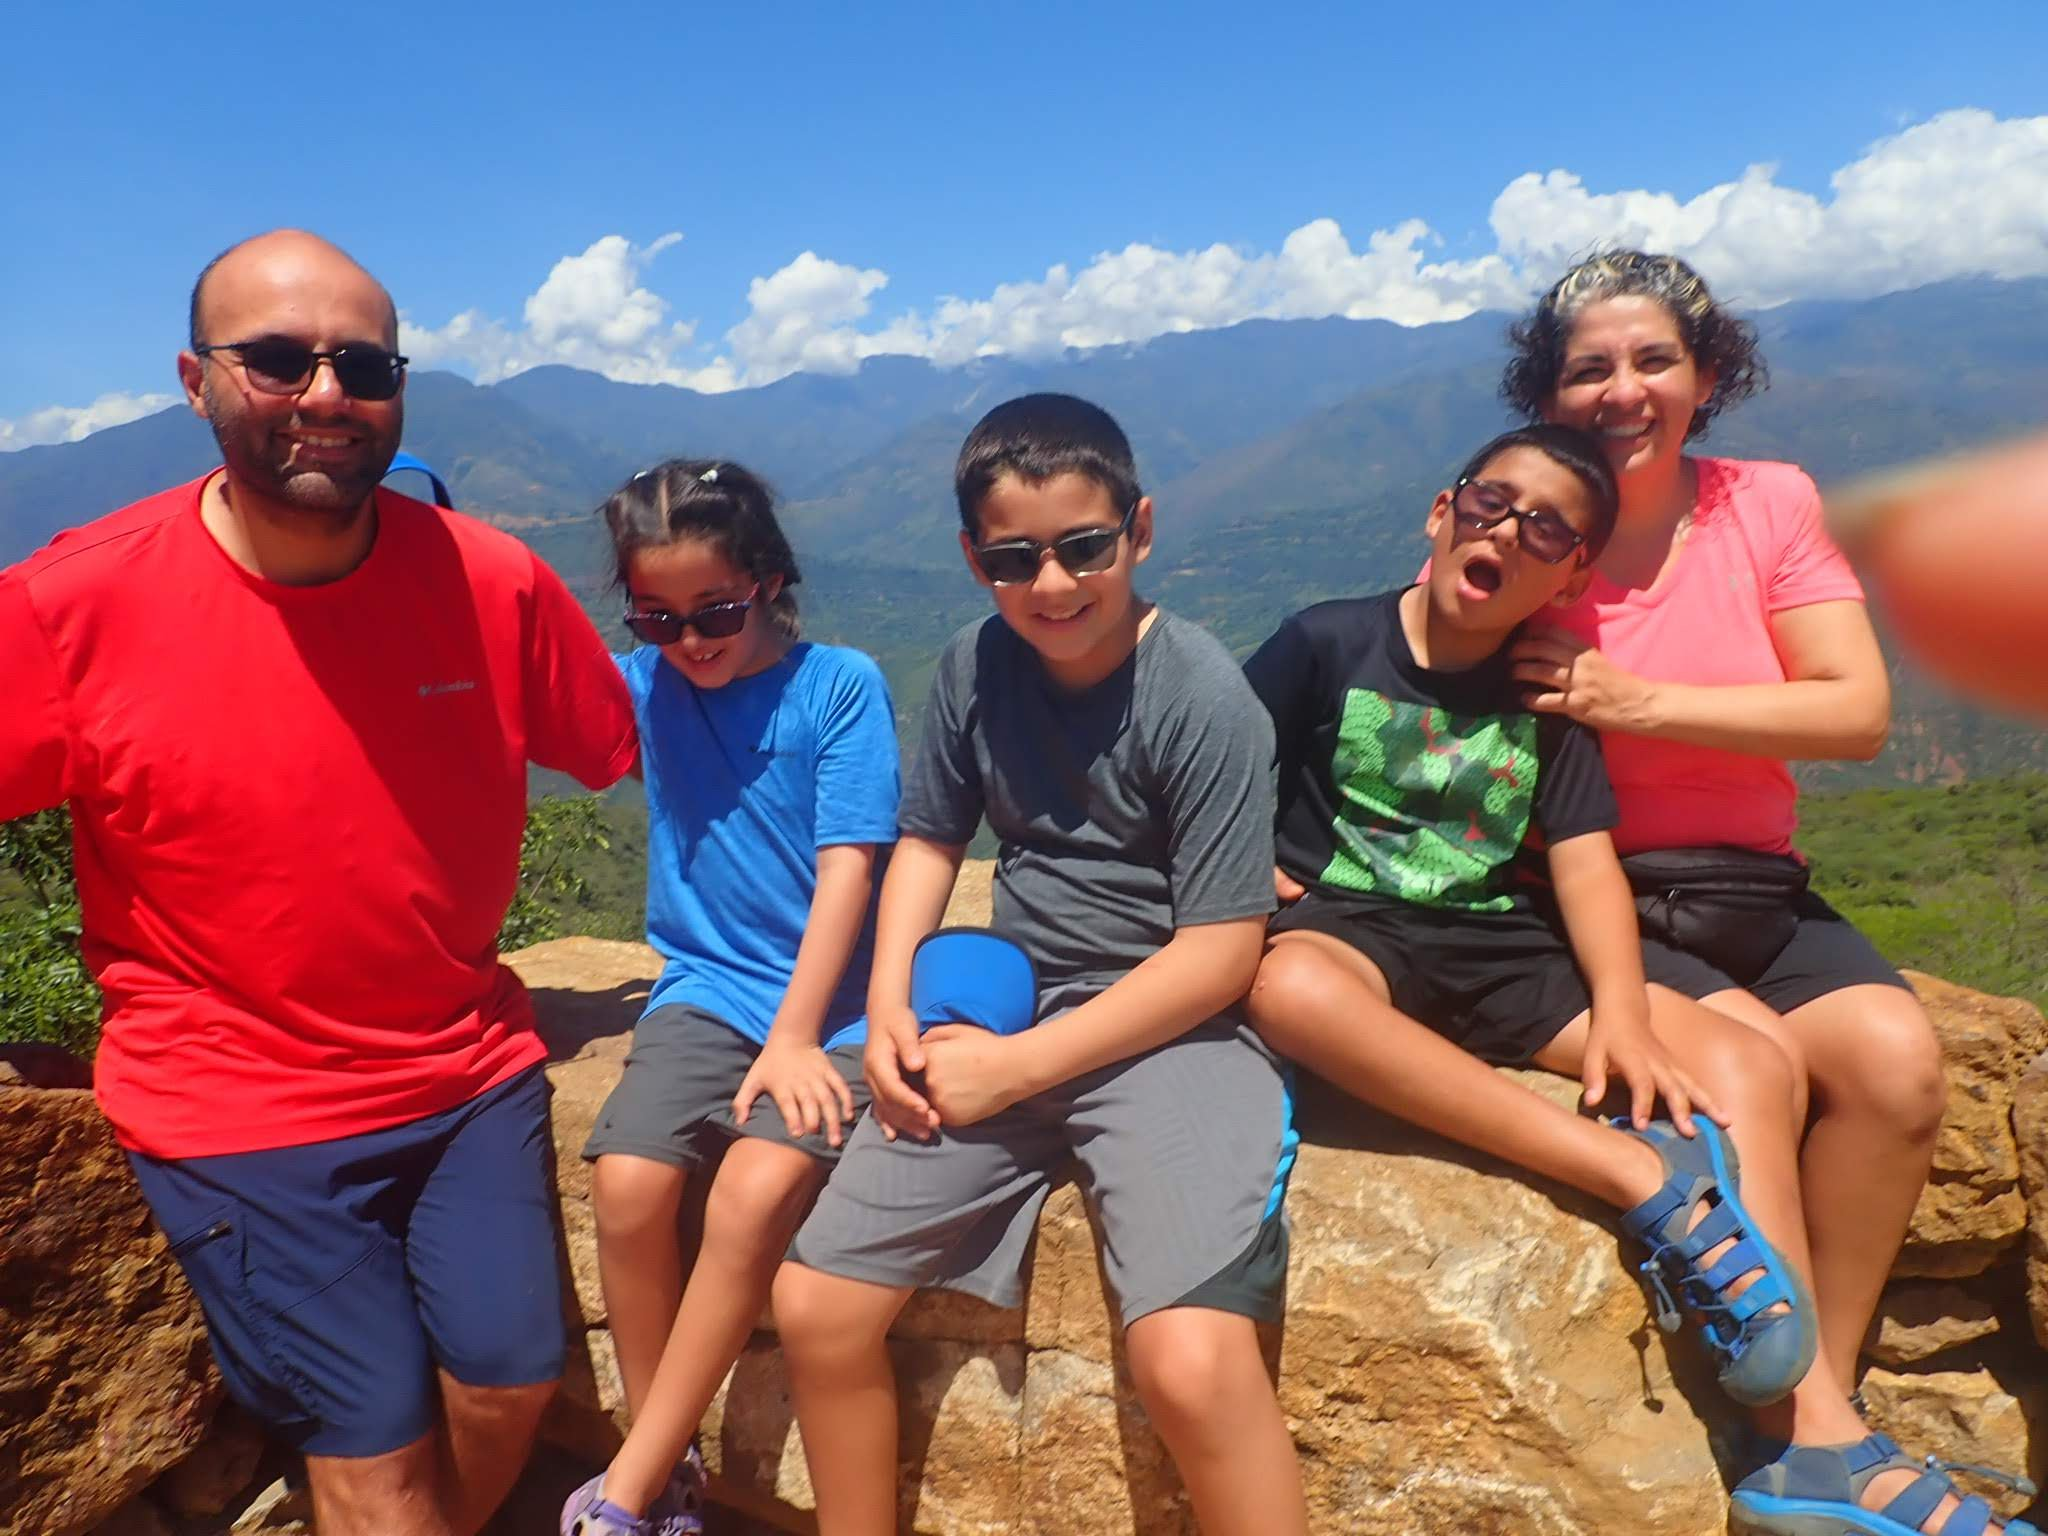 From left to right. Joe in a red shirt, Daniela in a blue shirt, Marco in a grey shirt, Mateo in the black shirt, and Charo in the pink shirt. We are sitting in Guane Colombia for this photo. The photographer's finger is also in the picture.